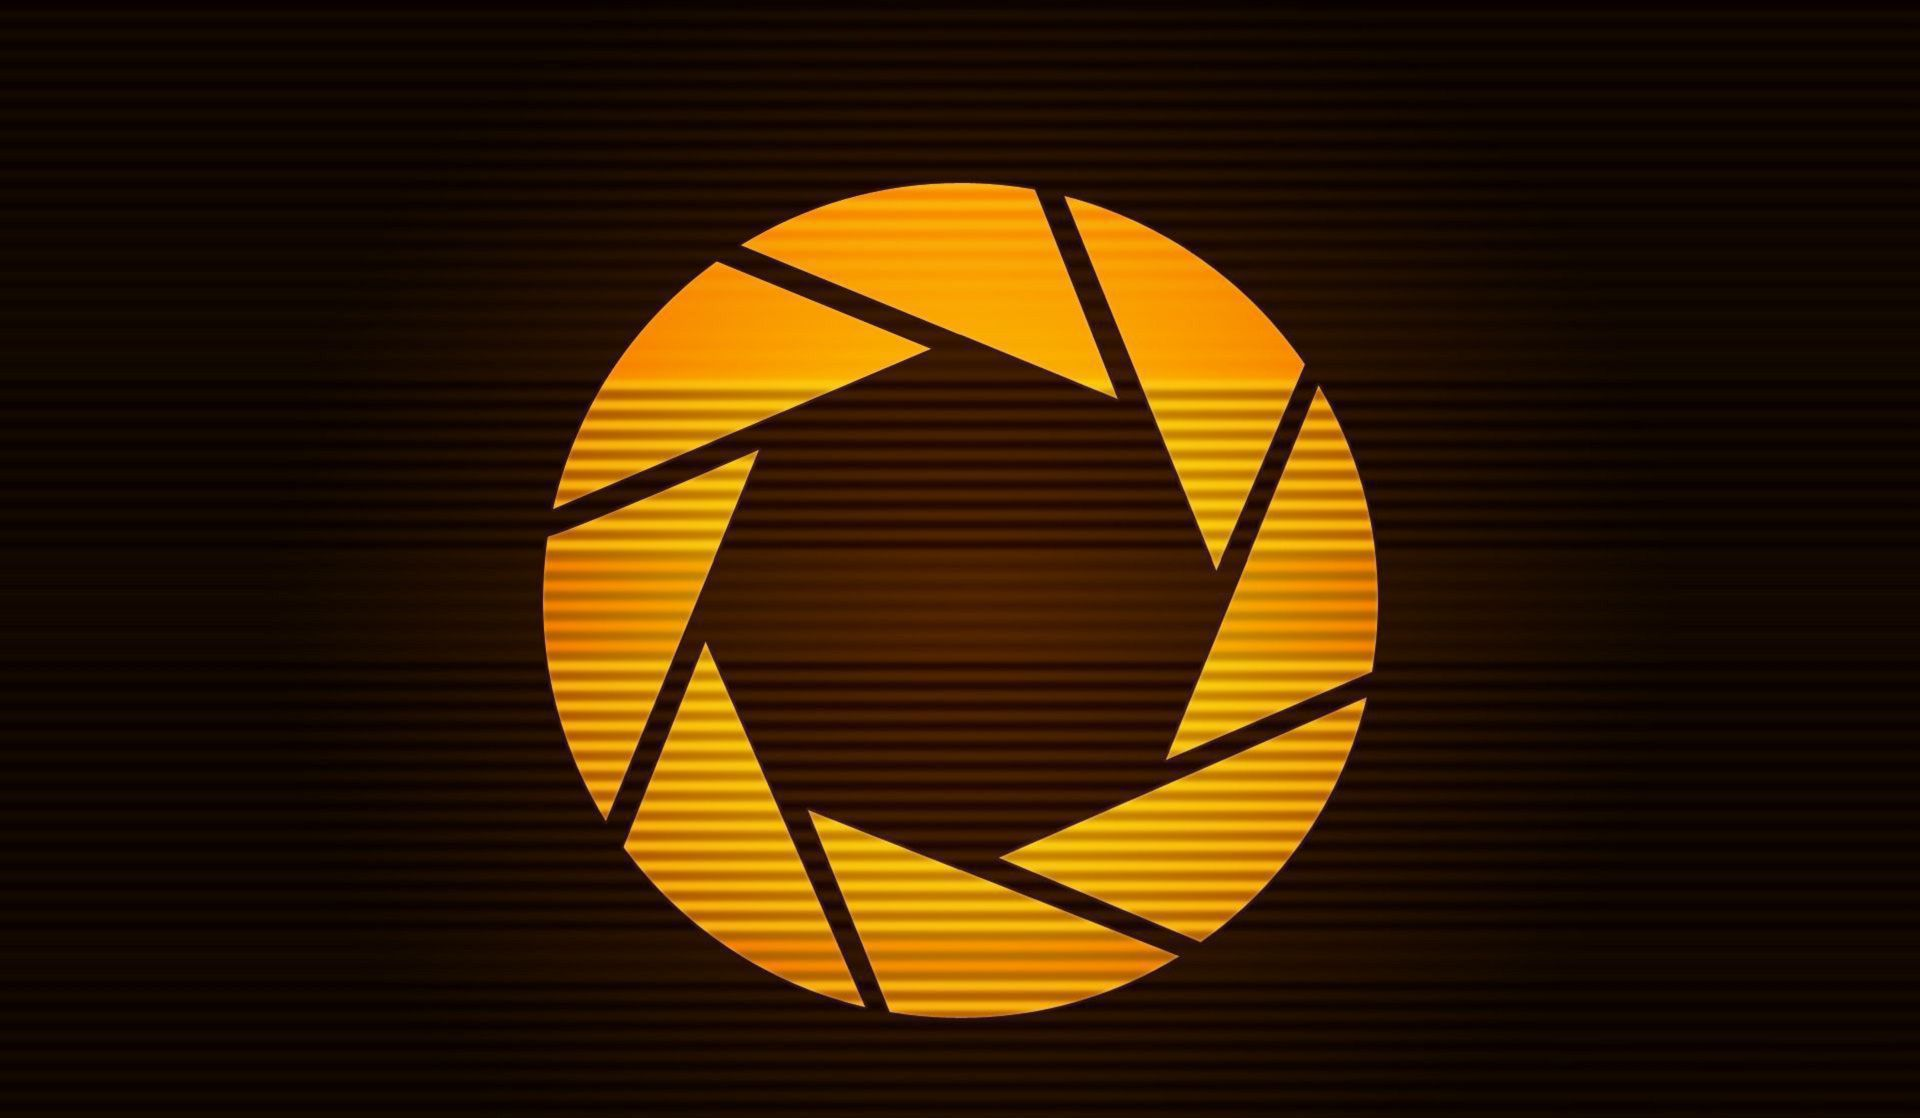 Aperture Science Gallery